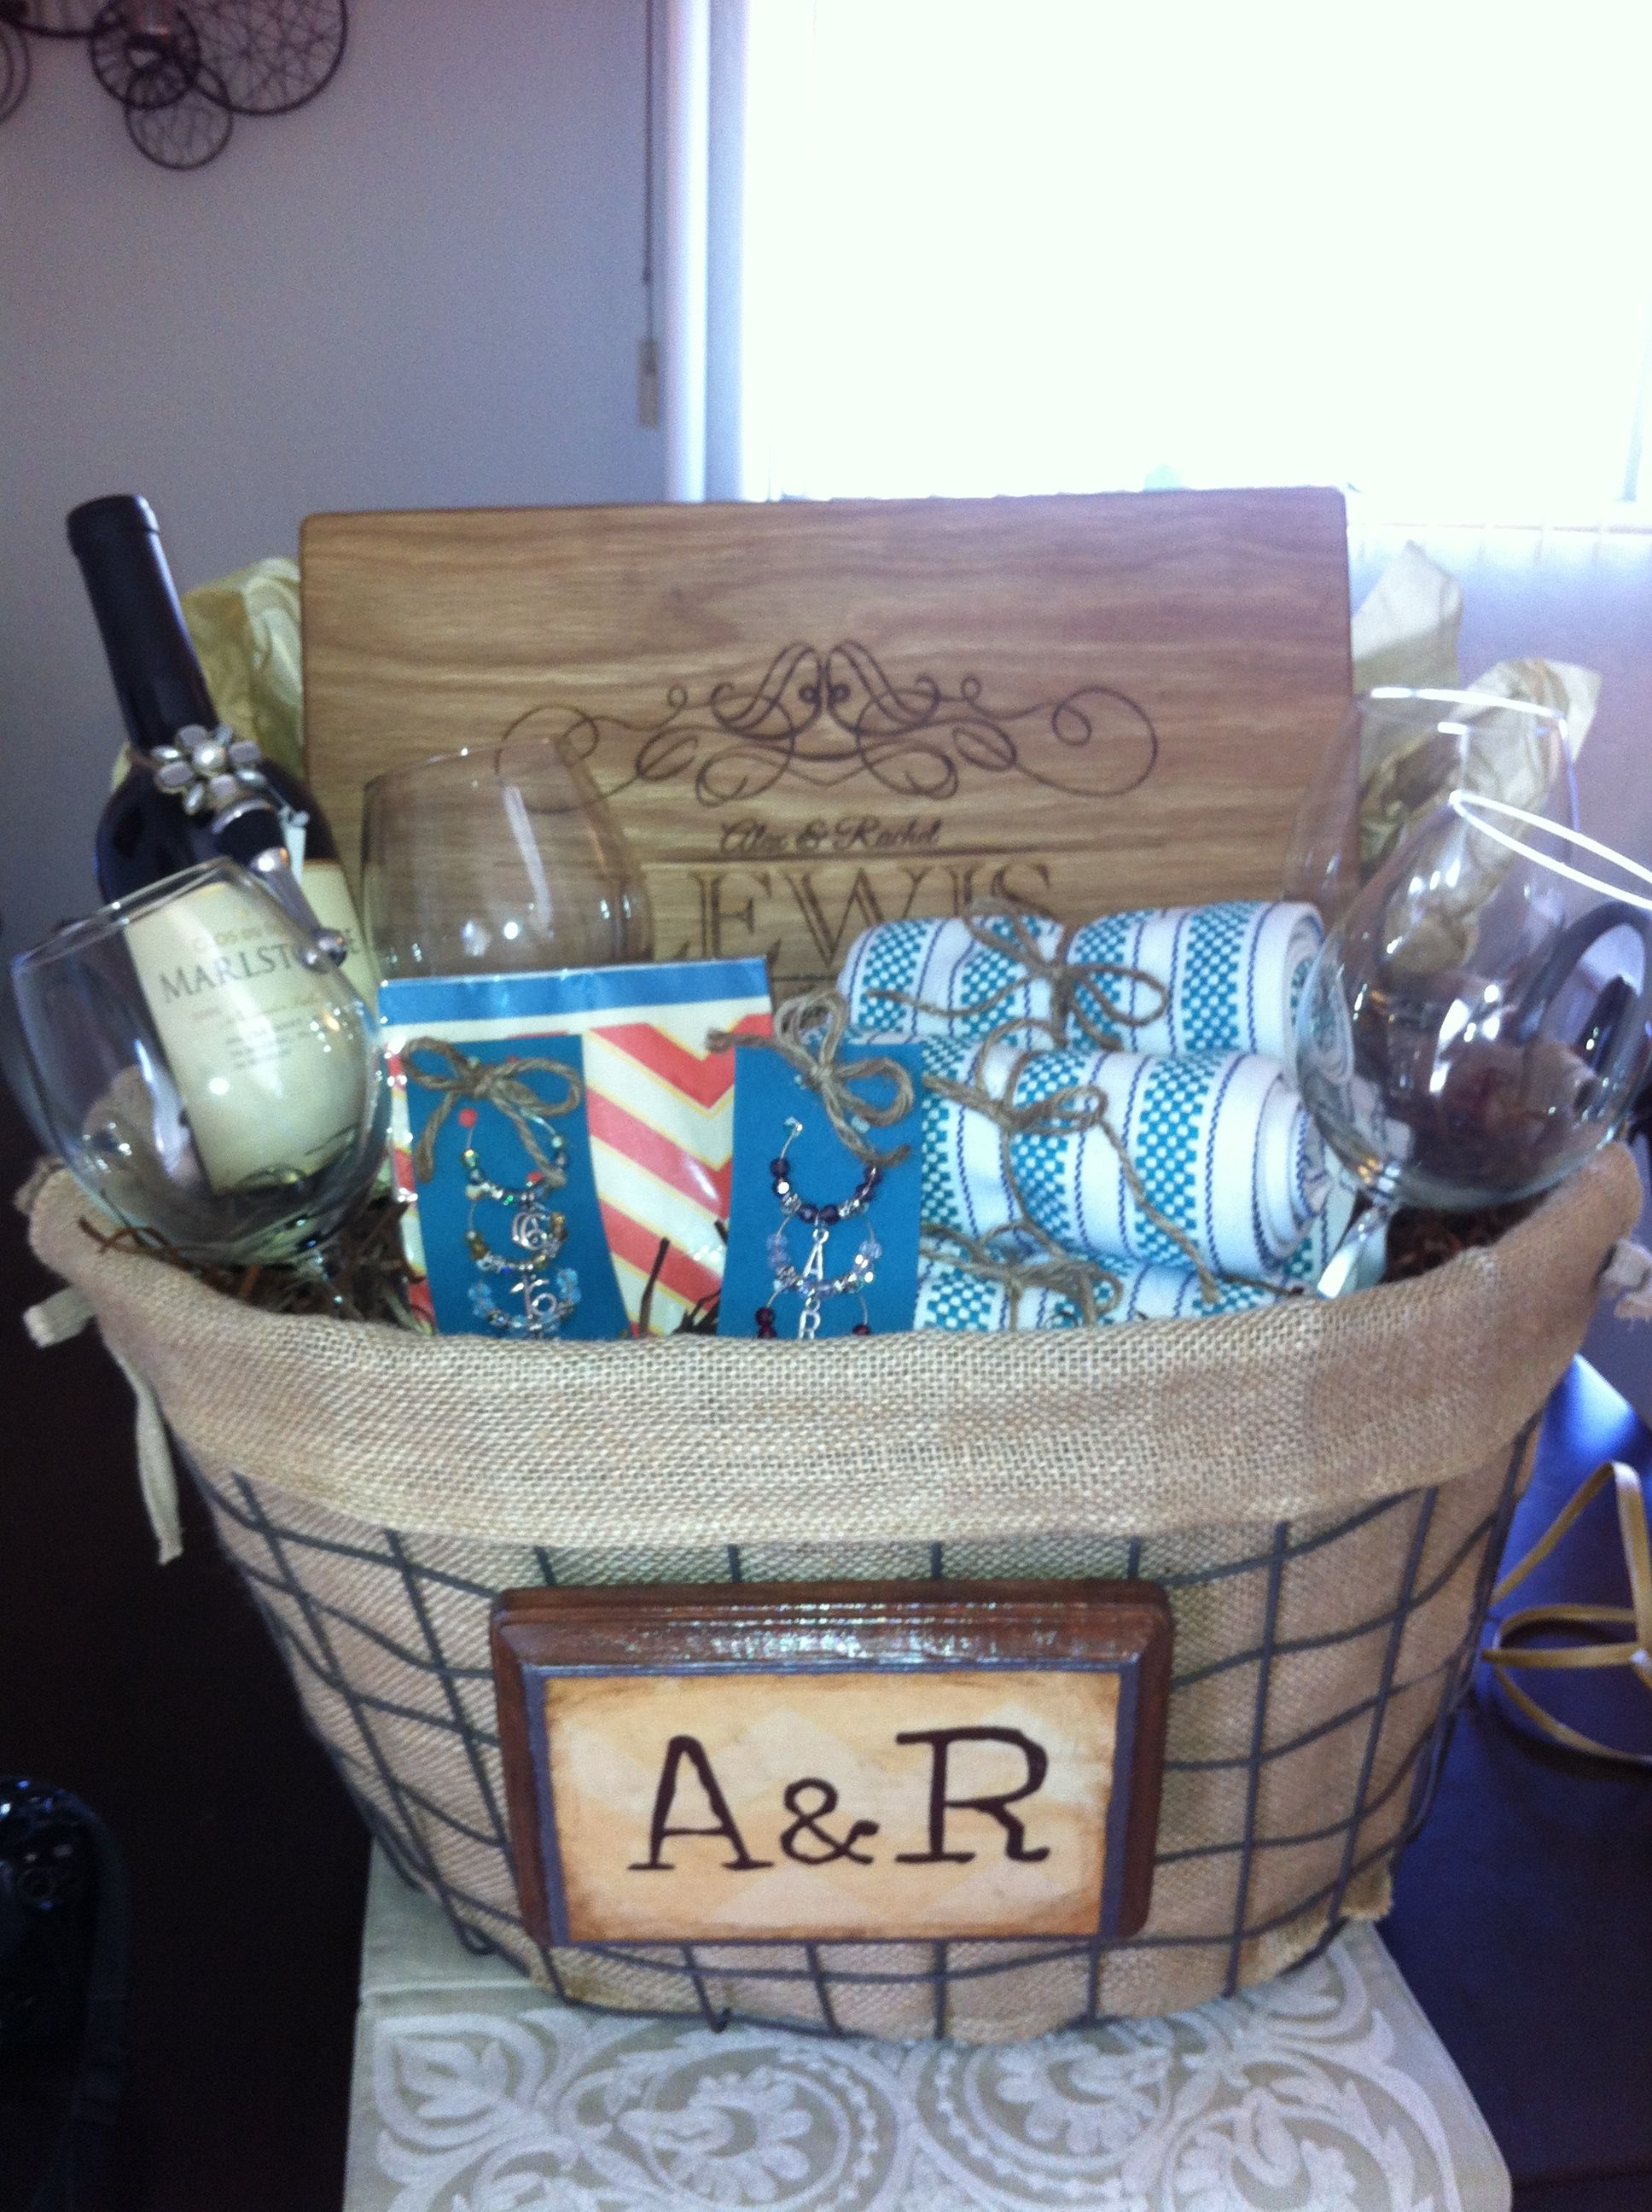 gift basket- could use bloxstyle's personalized cutting board & wood